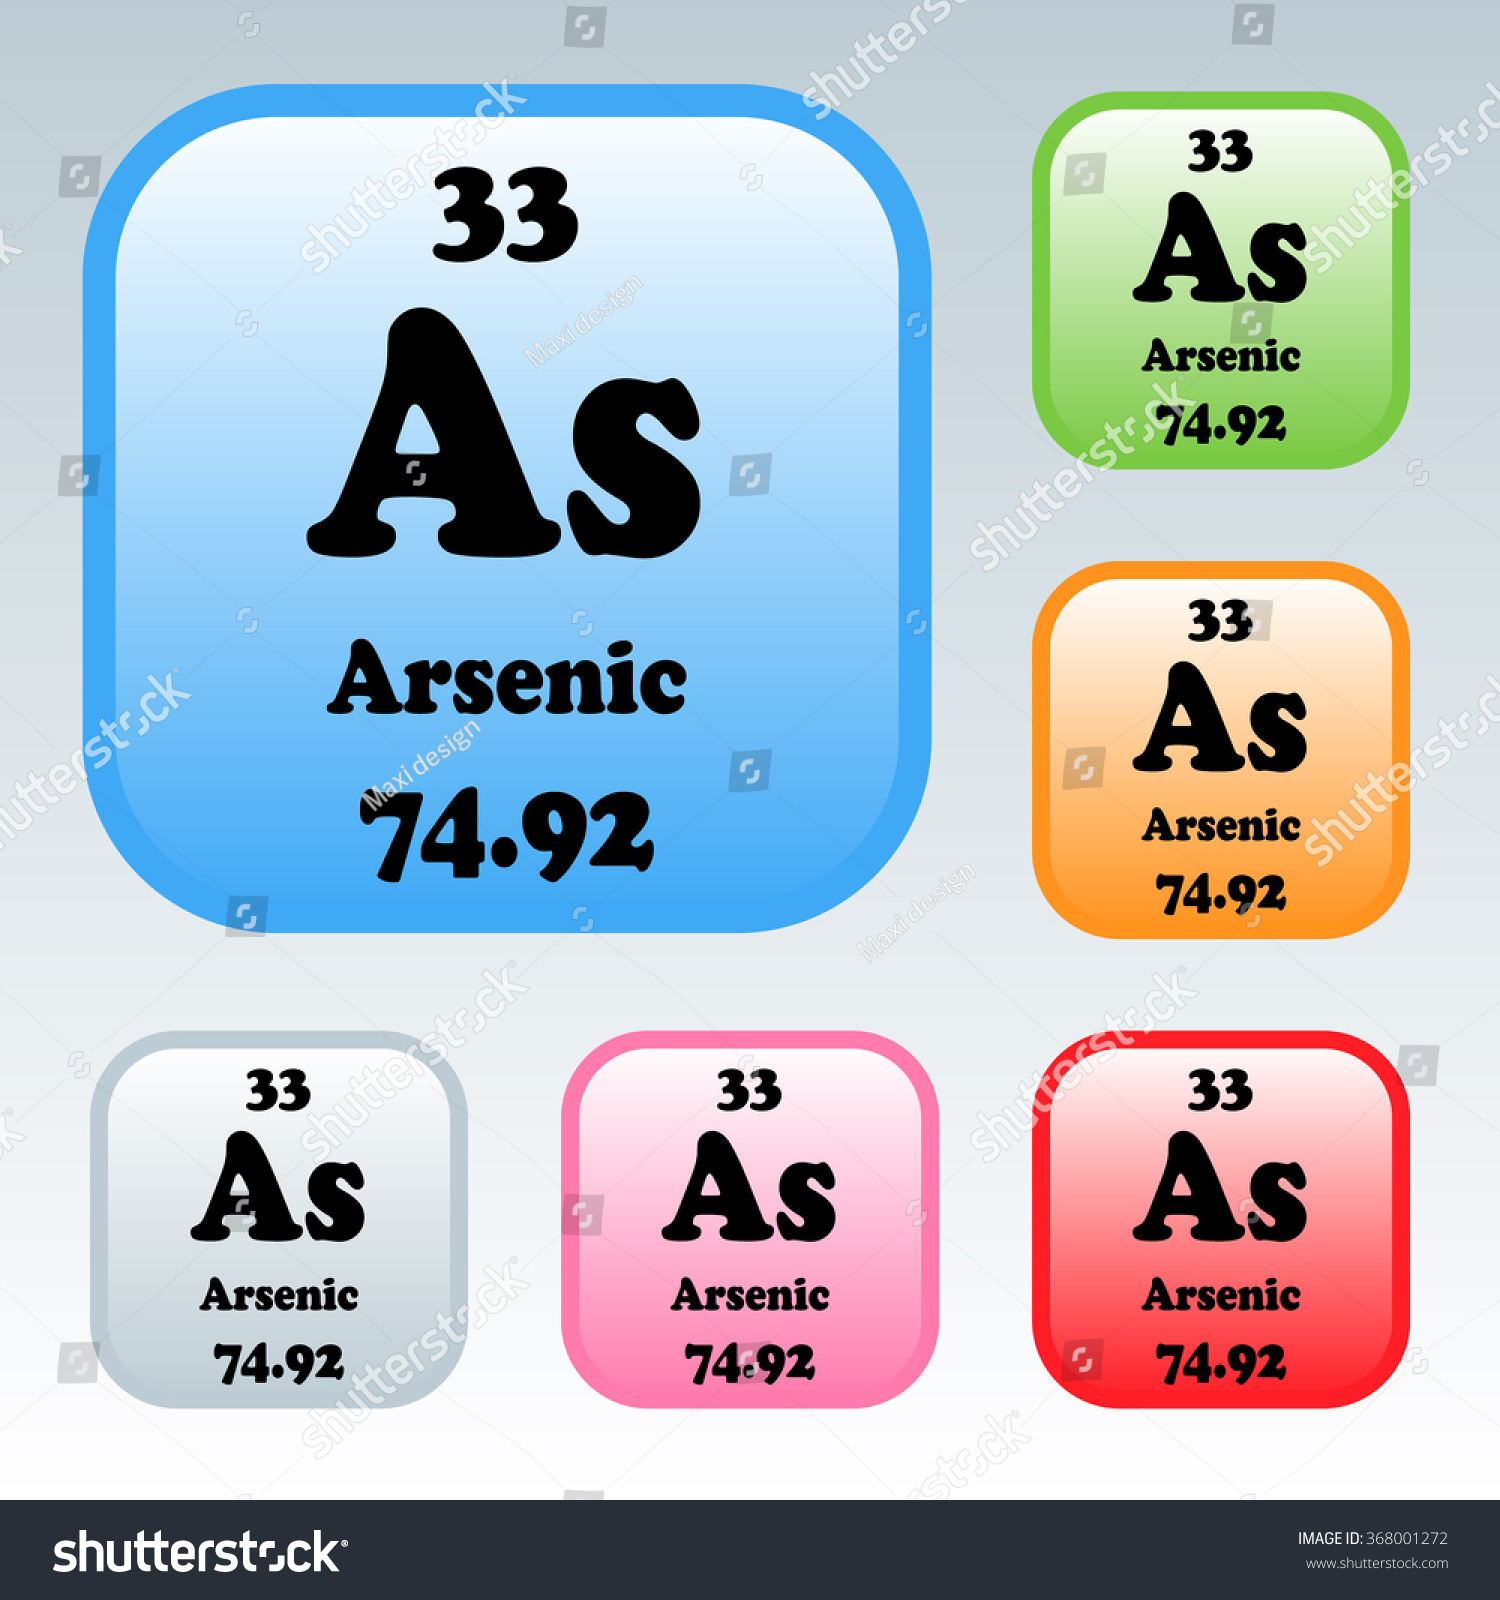 Periodic table elements arsenic stock vector 368001272 shutterstock the periodic table of the elements arsenic biocorpaavc Image collections